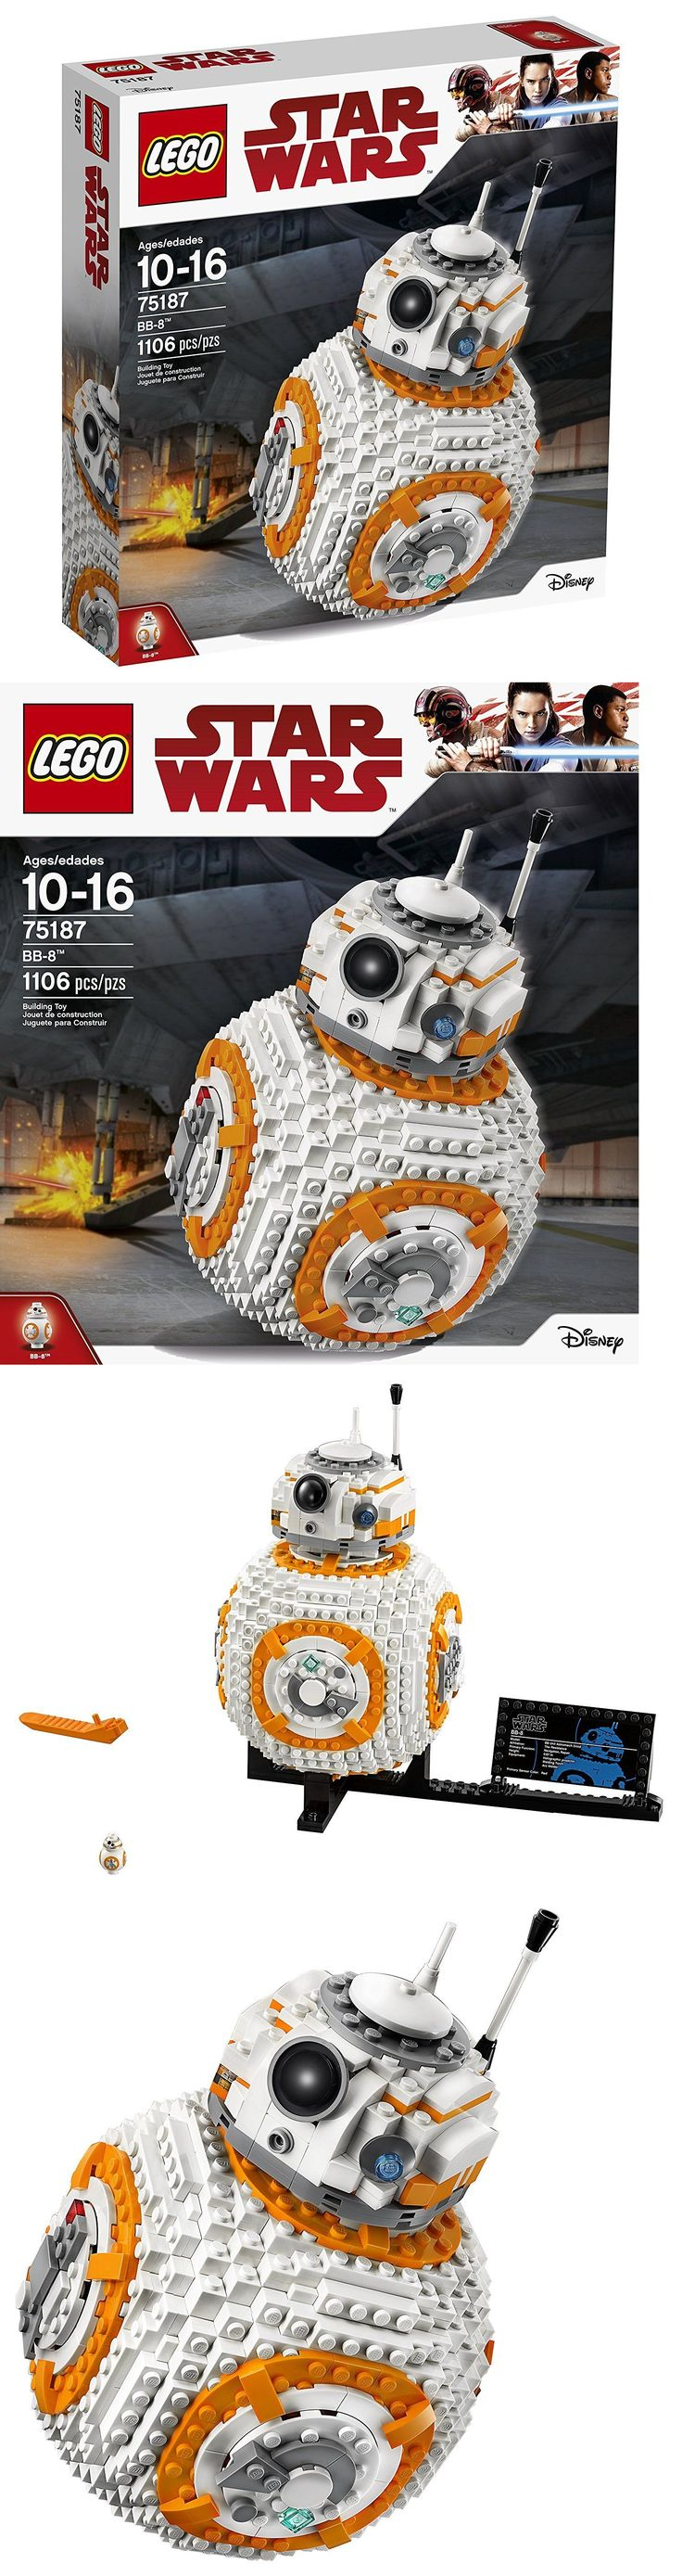 My r2 bb8 heart design is now a t shirt you can buy http tee pub - Bricks And Building Pieces 183448 Lego Star Wars Bb 8 75187 Building Kit